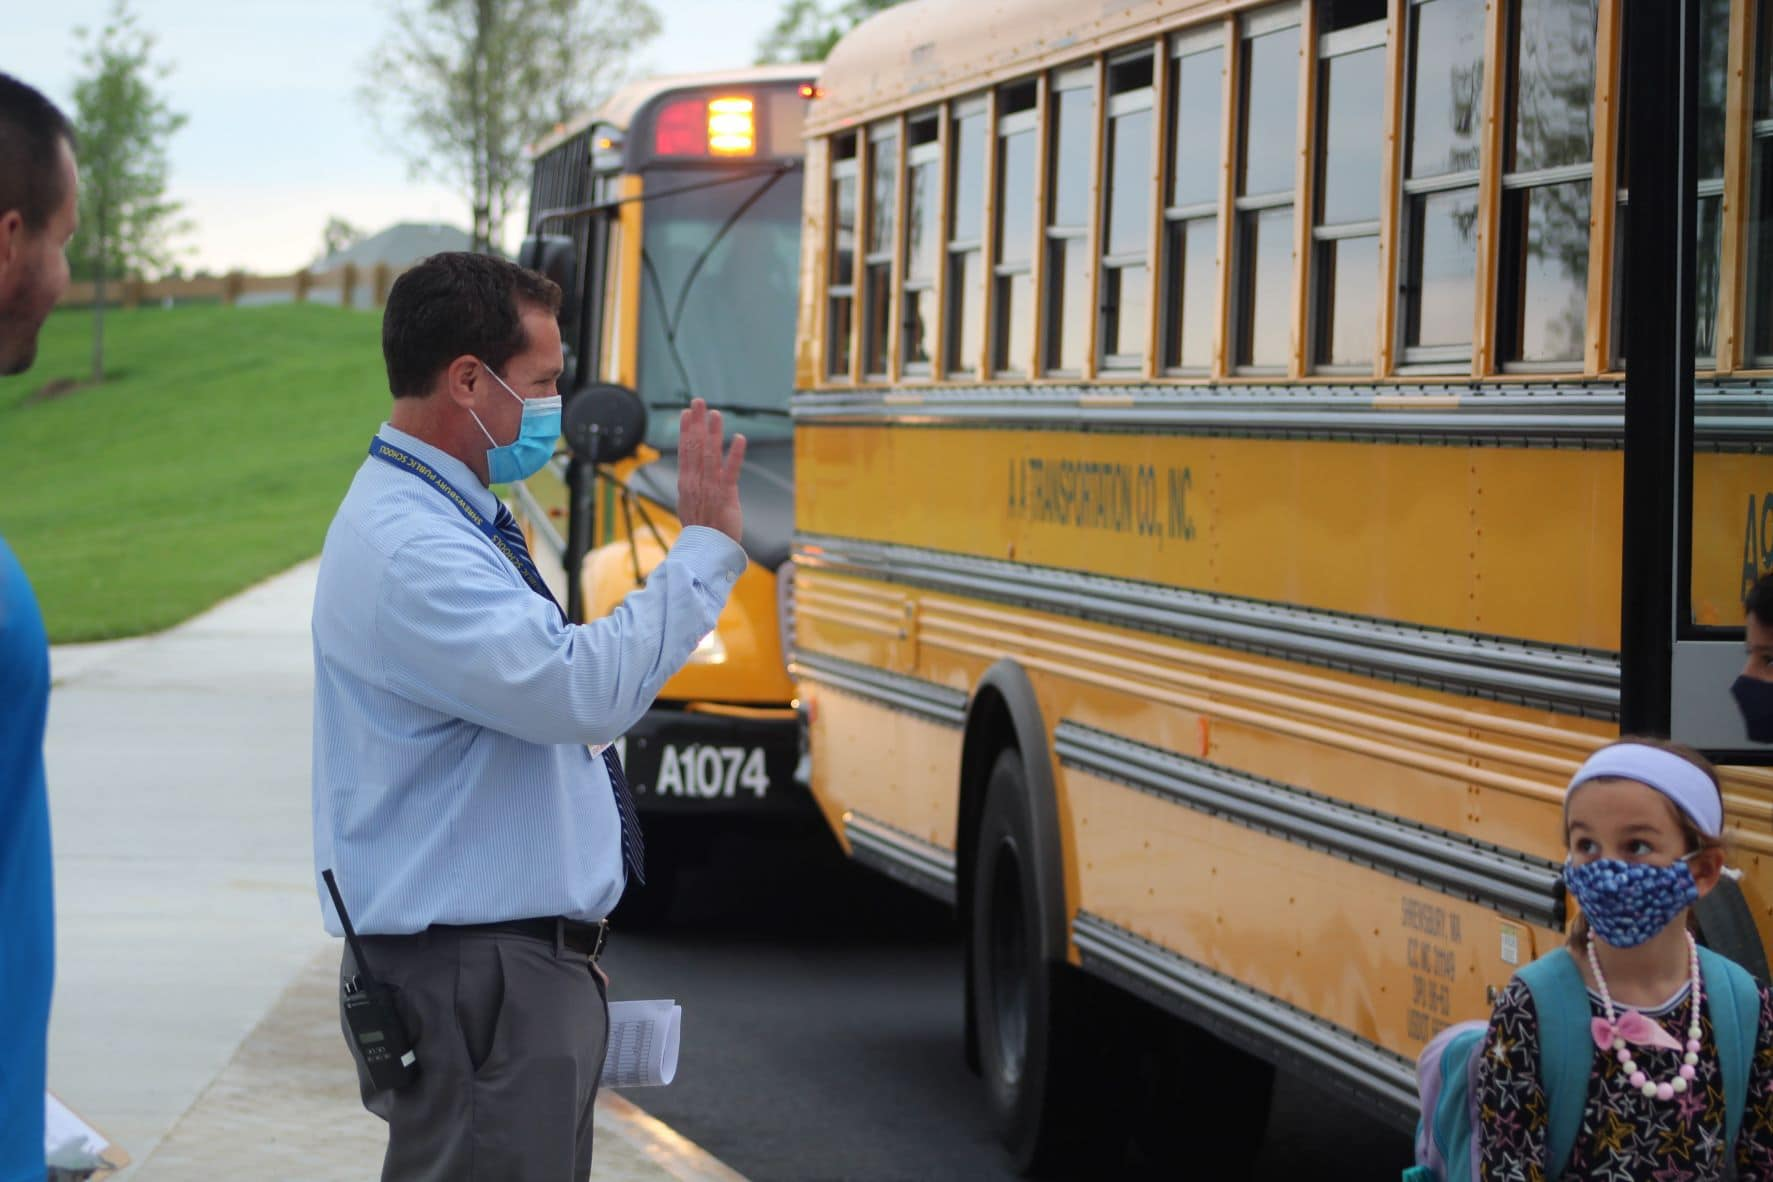 Principal Chris Girardi greets students as they come off the bus.